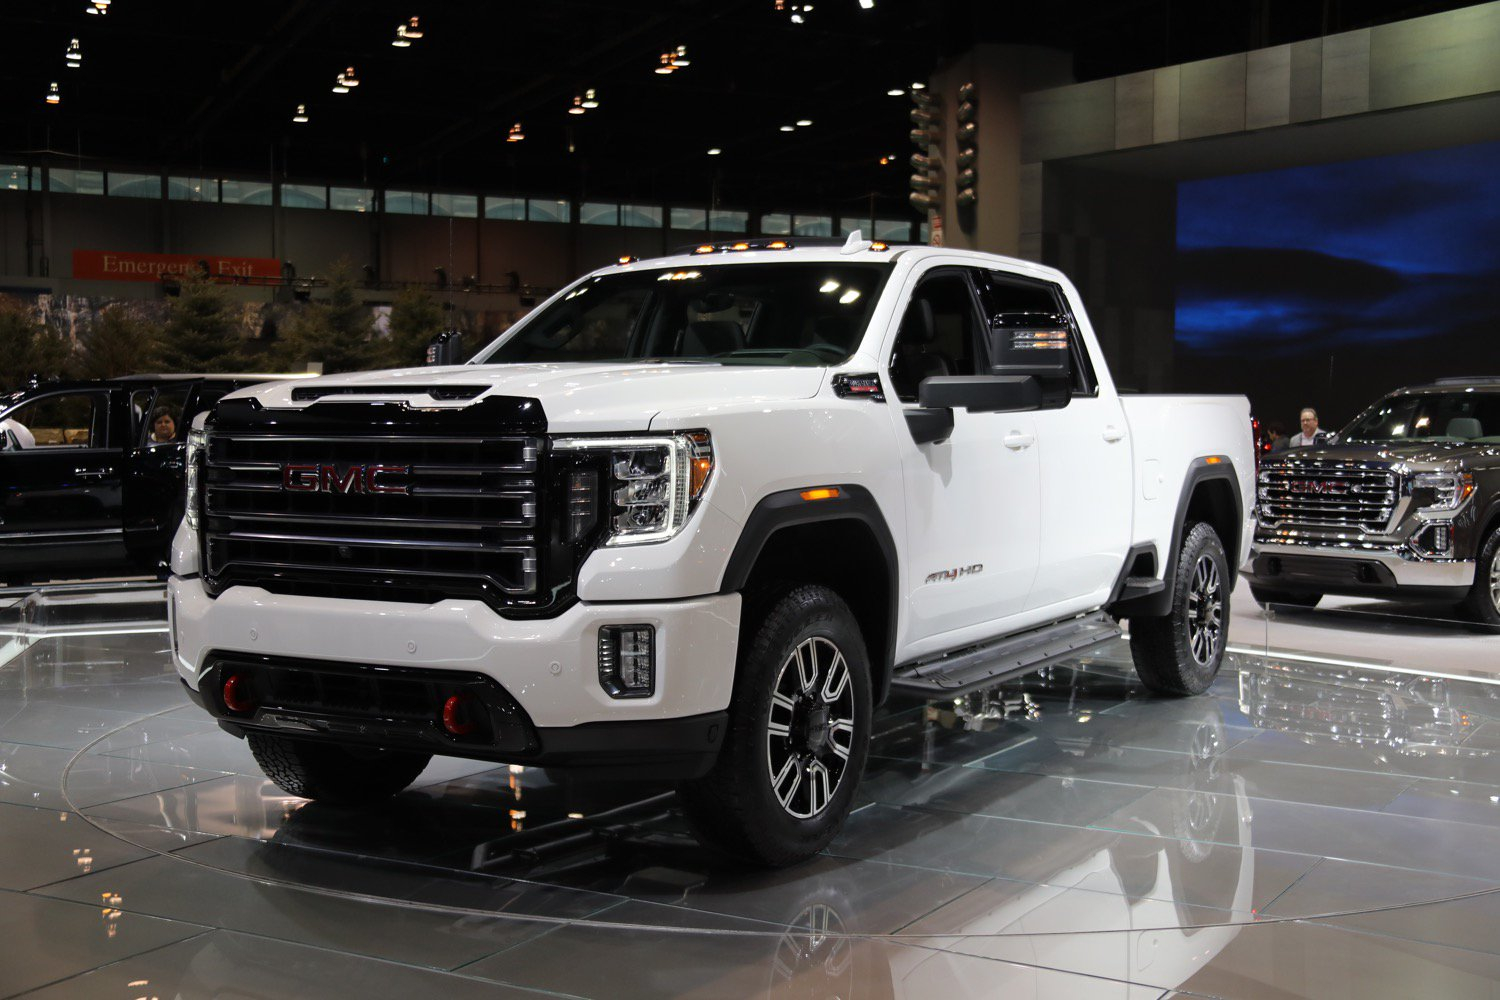 2020 Sierra At4 Hd: Live Photo Gallery | Gm Authority 2020 Gmc Sierra 2500Hd At4 Release Date, Price, Engine